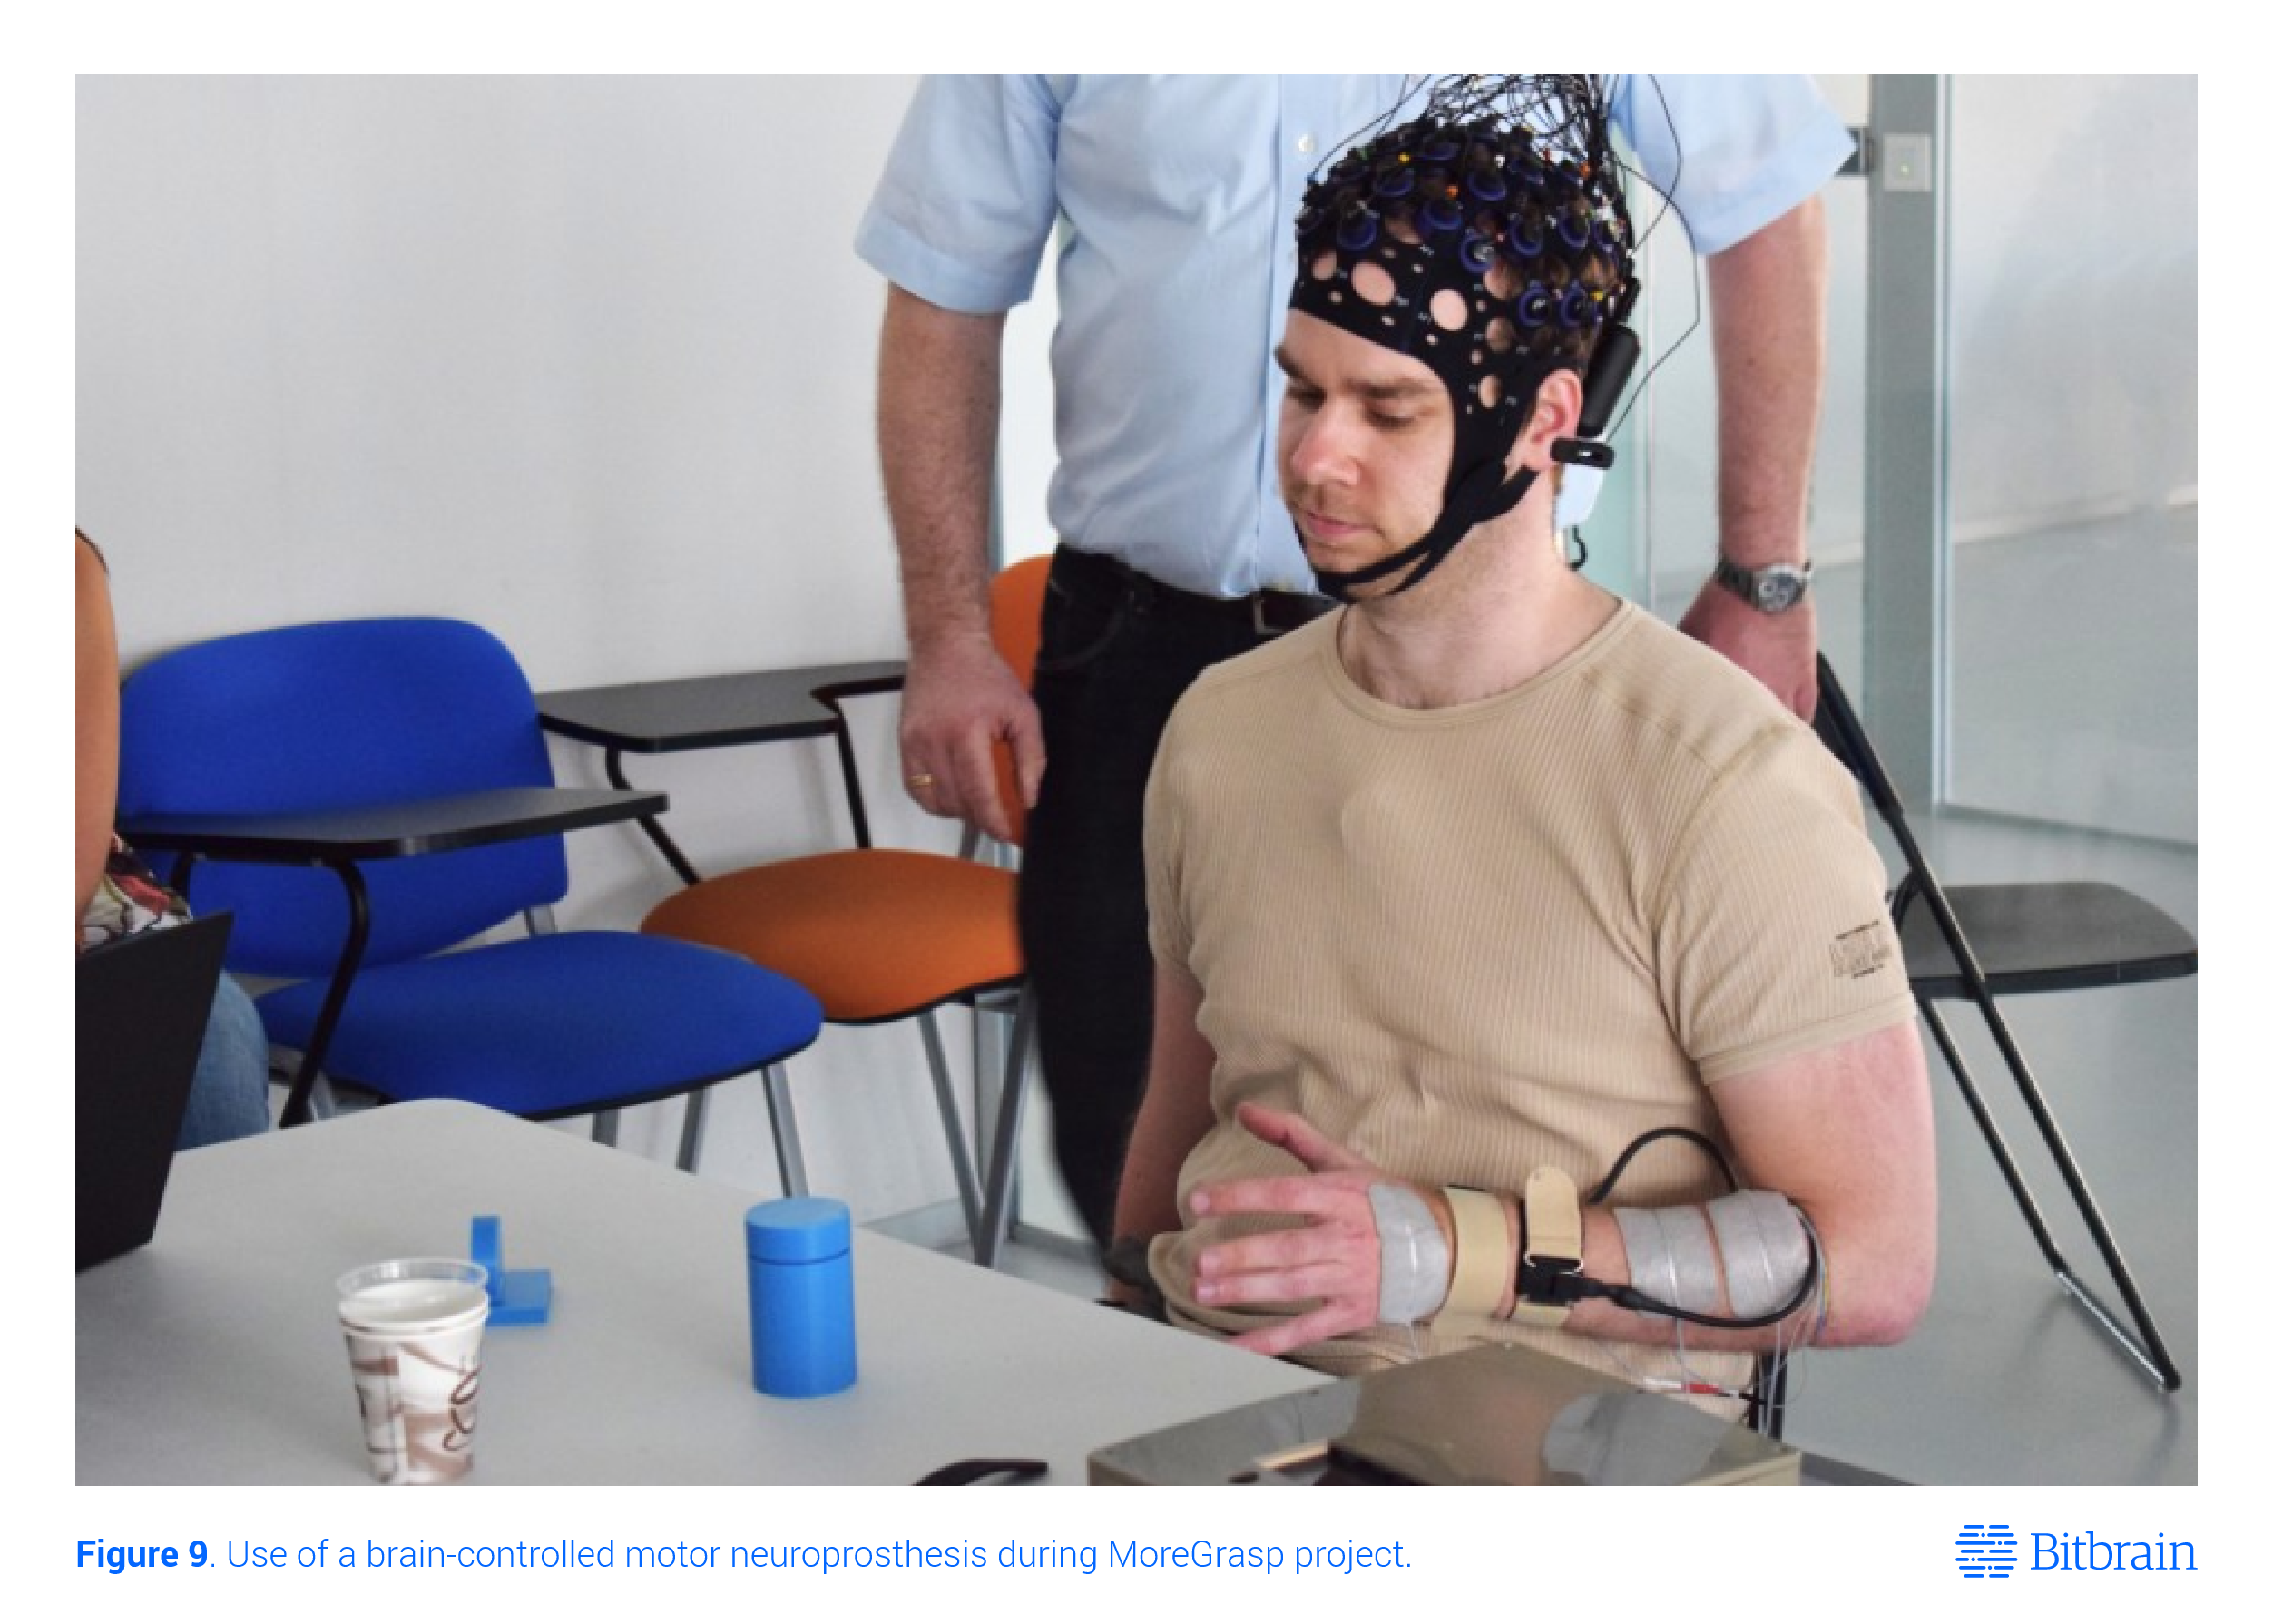 eeg cap for brain-computer interface research project